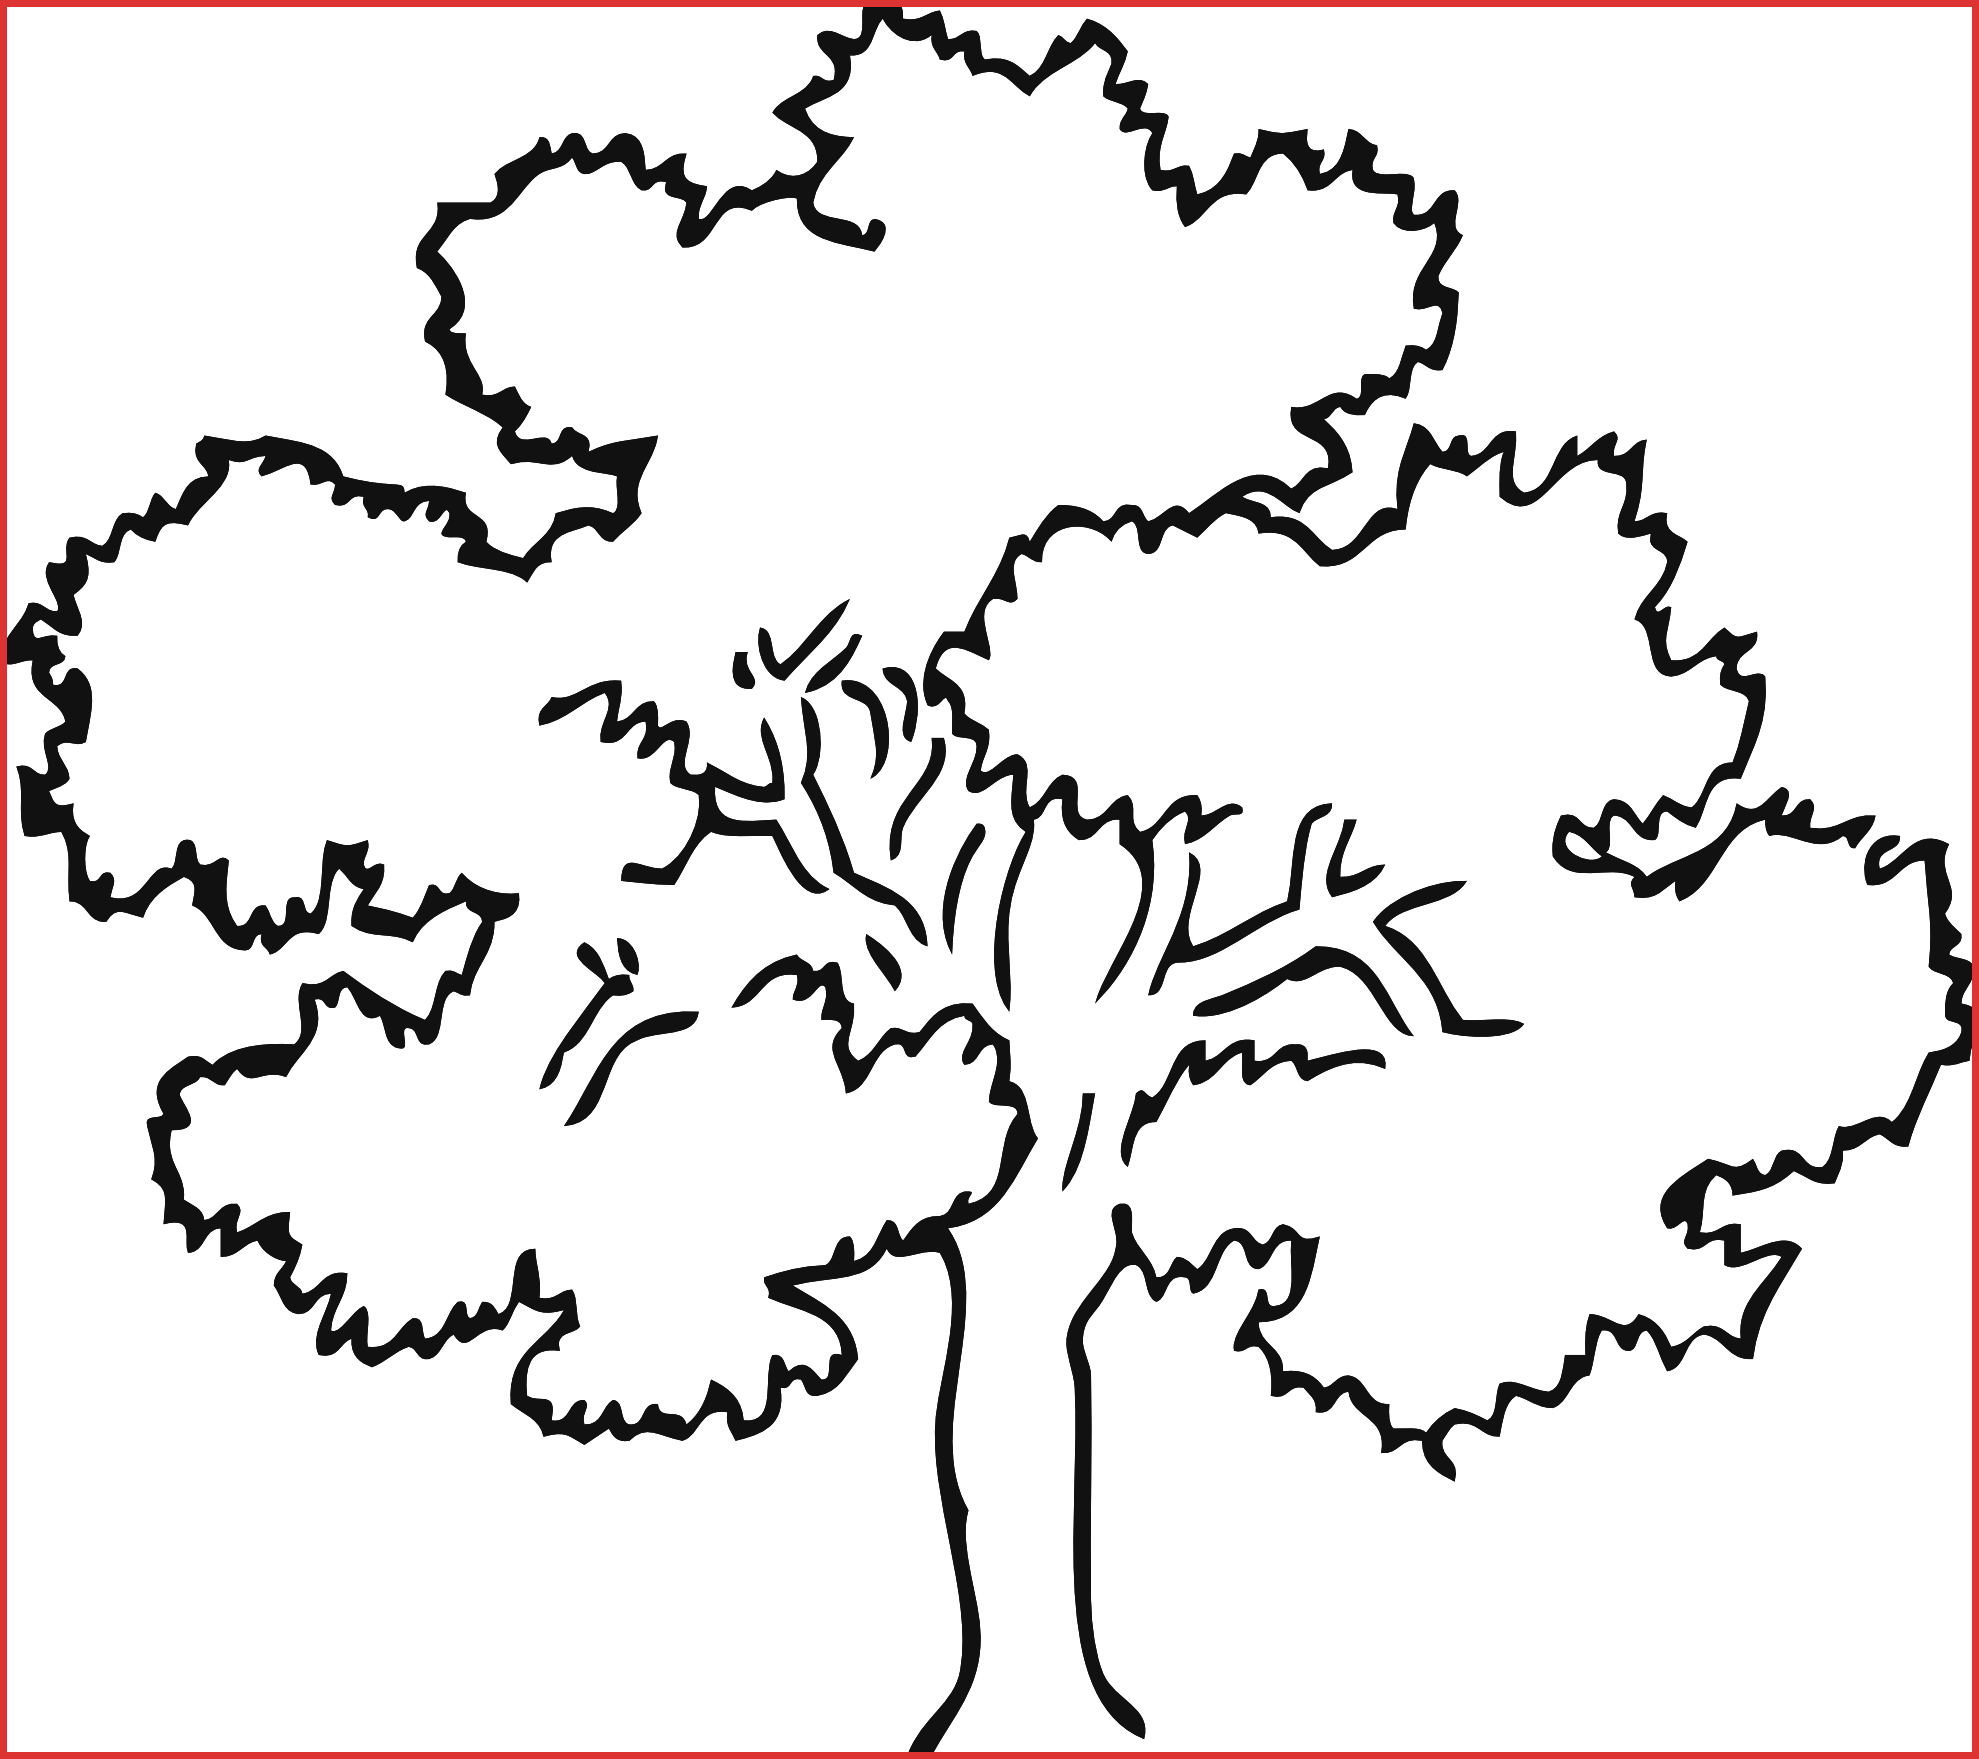 Tree line clipart image library stock Tree Drawing Clip Art at GetDrawings.com | Free for personal use ... image library stock